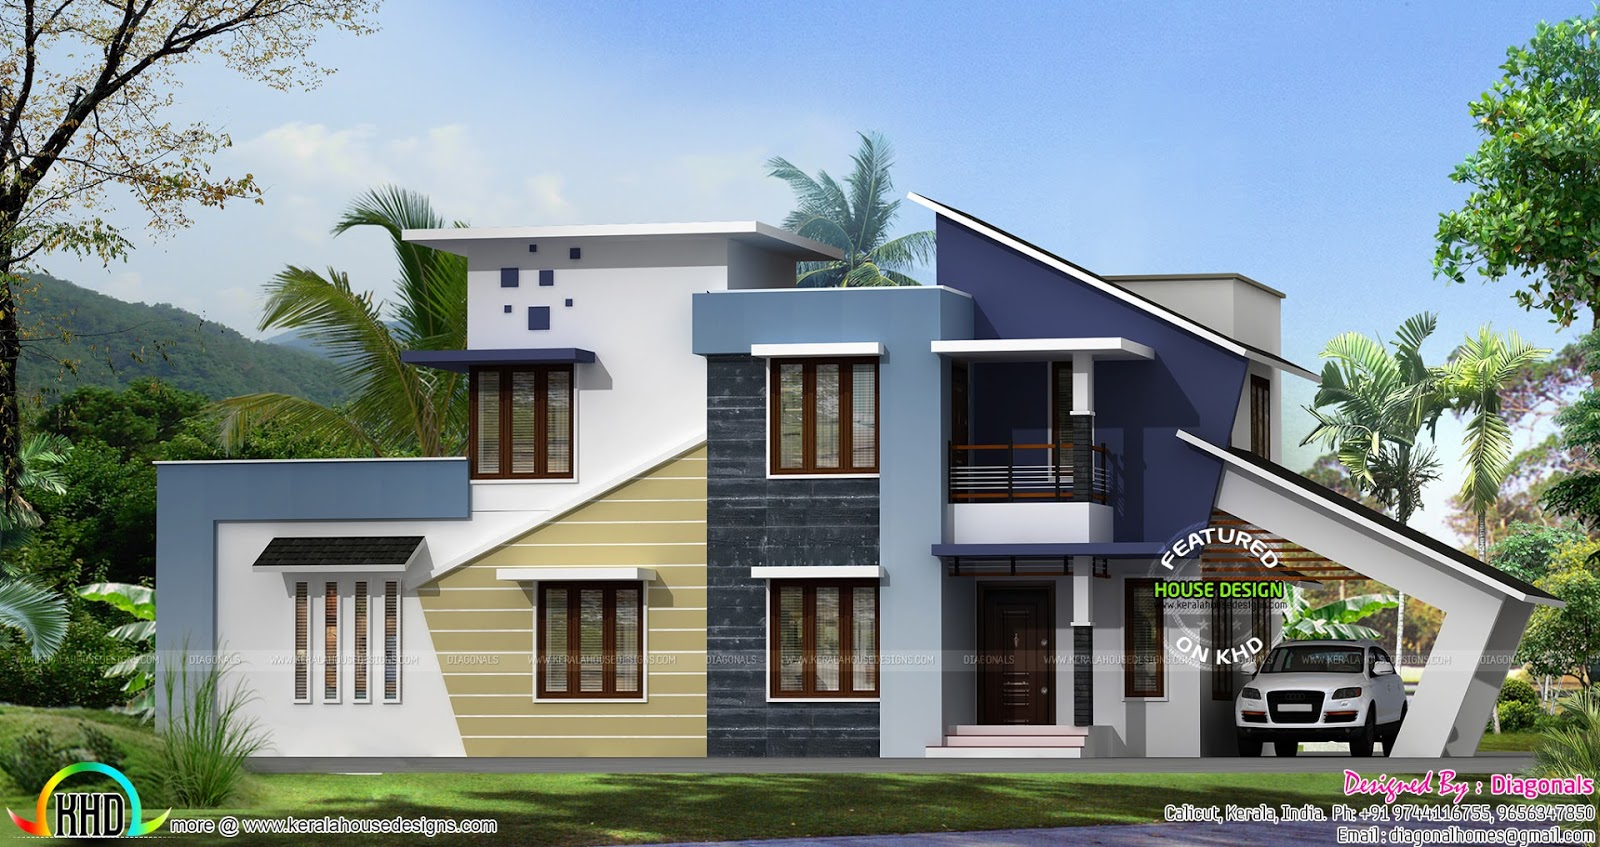 House Designs New Home Designs Latest Modern House Designs Modern